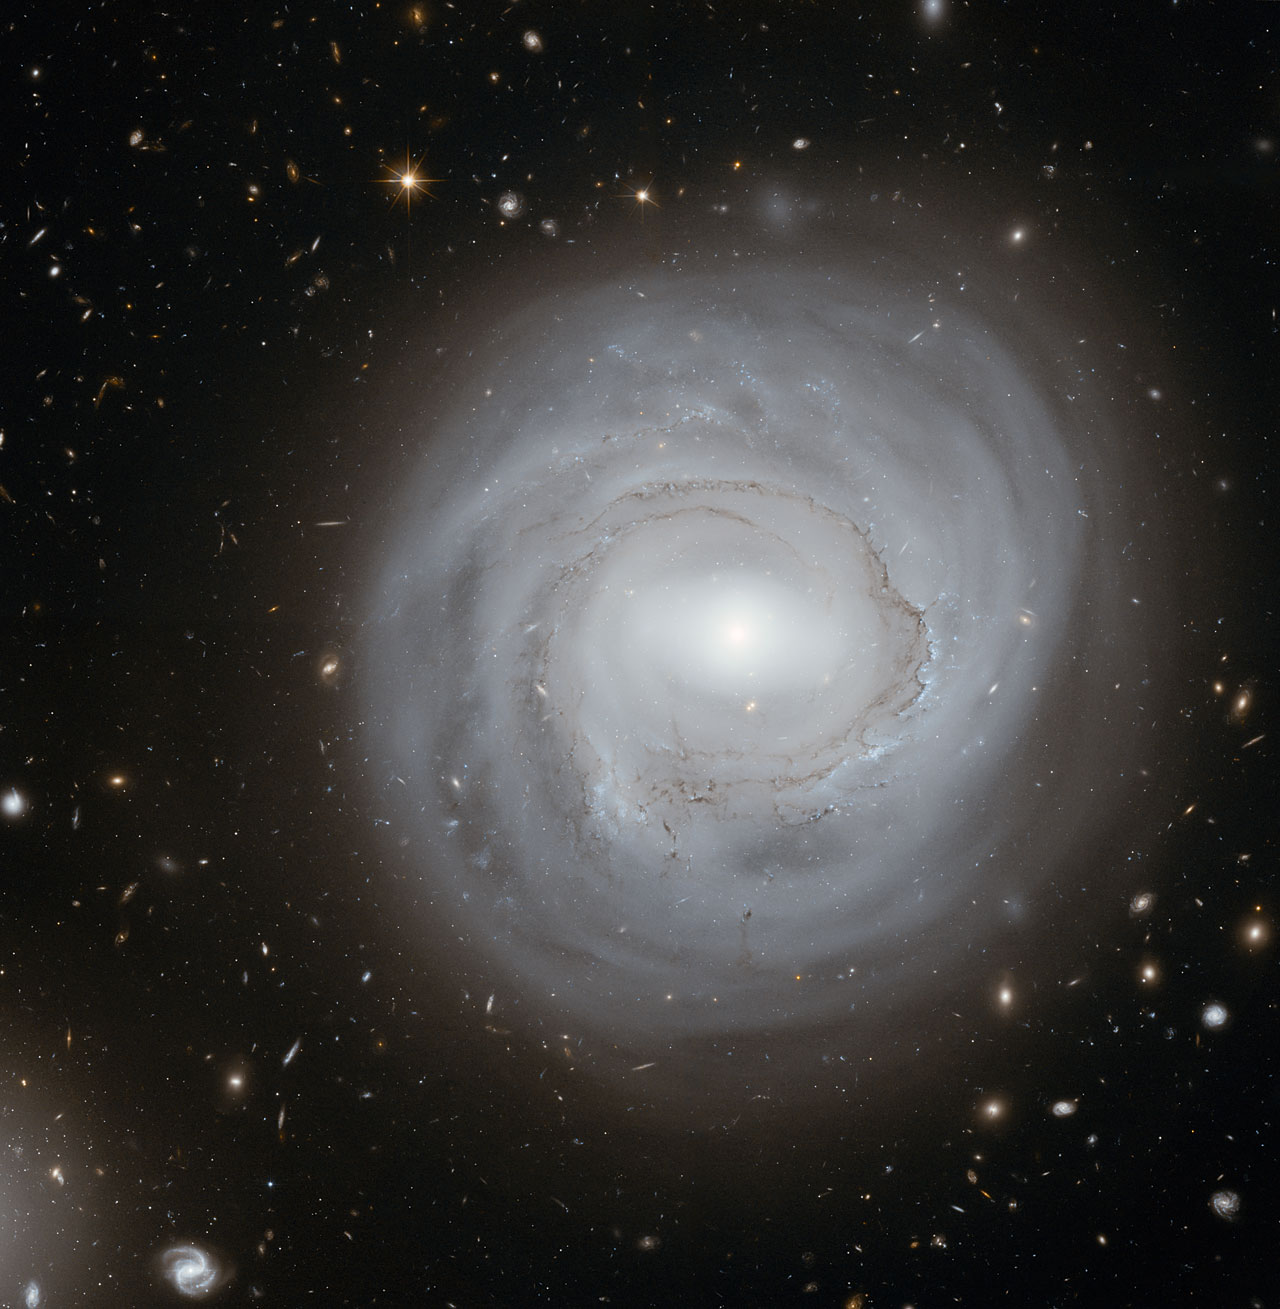 la Galaxie NGC4921 photographiée par Hubble